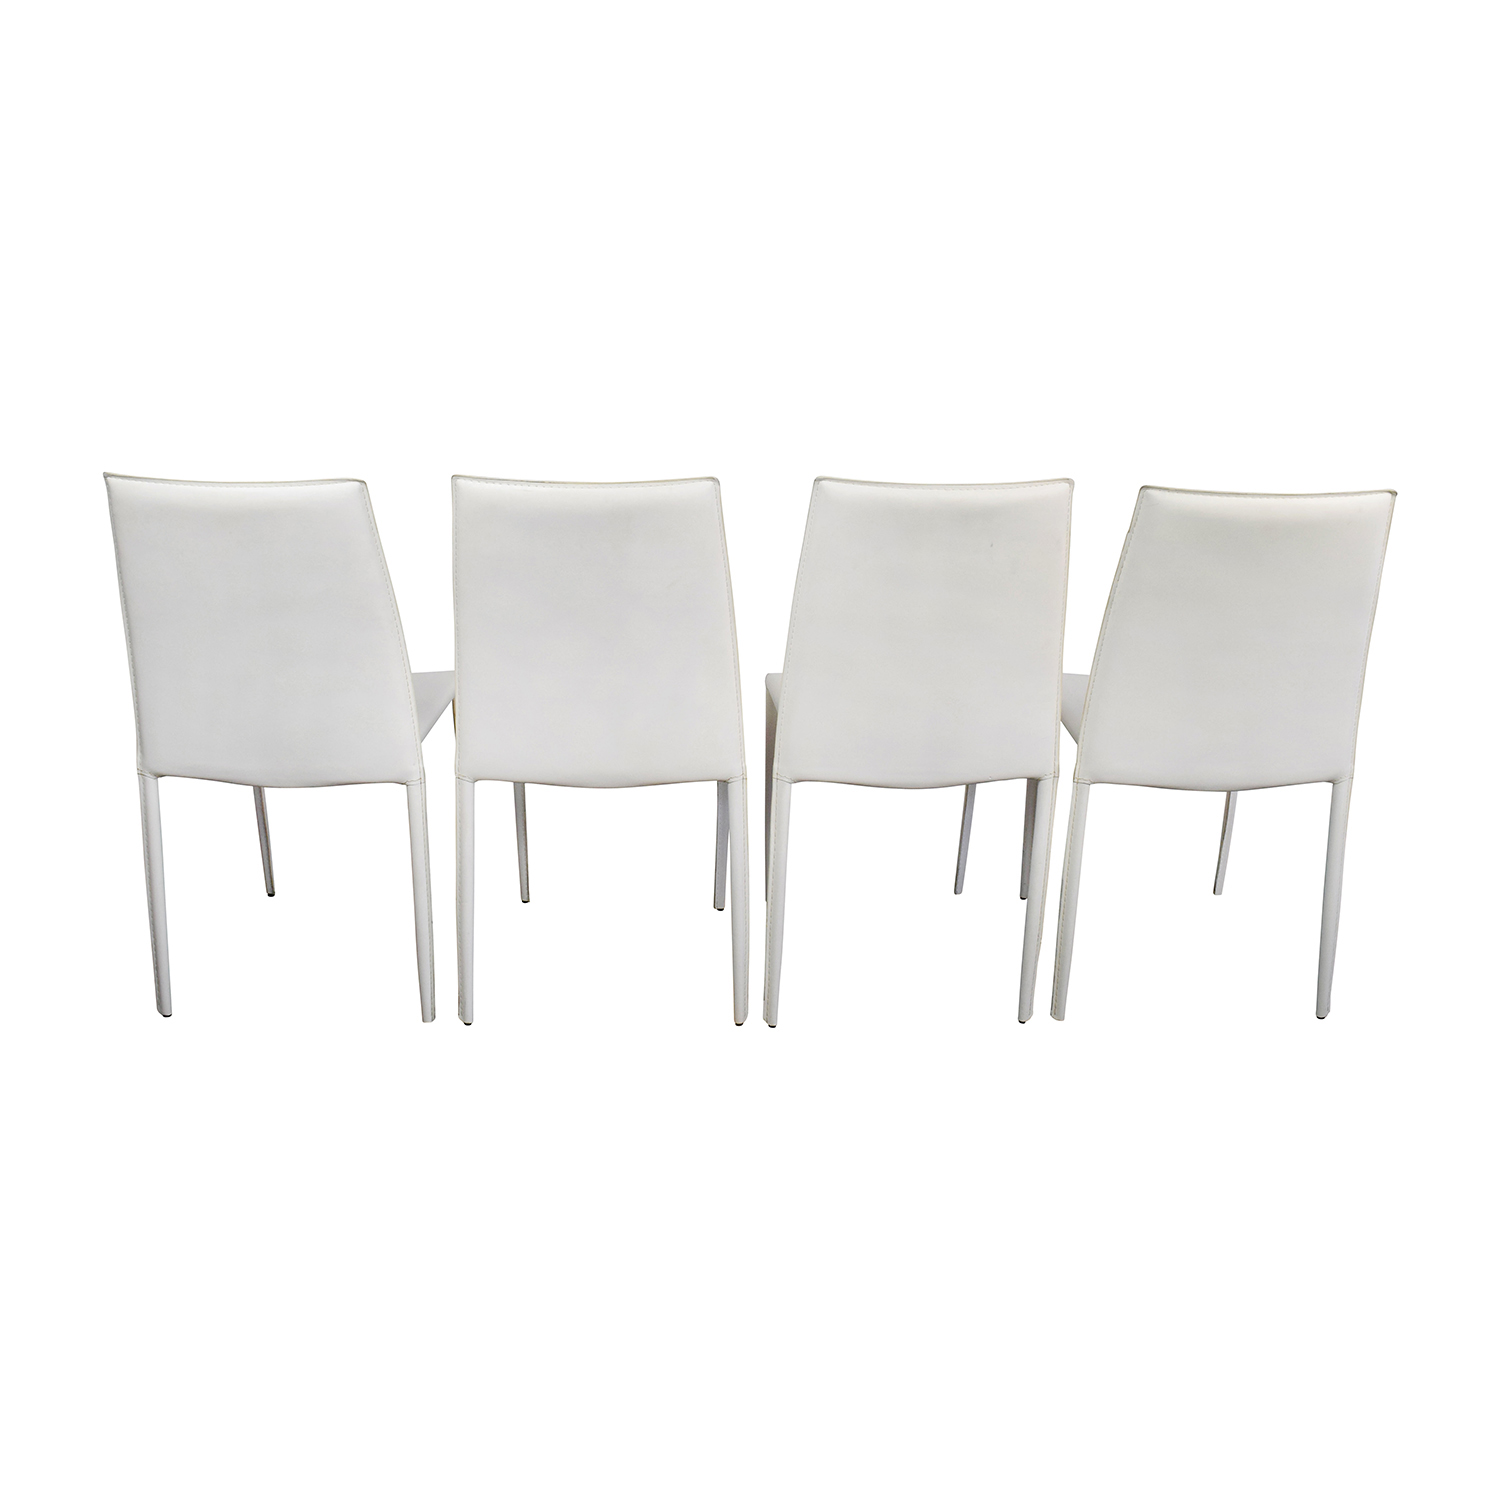 all modern all modern white leather dining chairs .  off  all modern all modern white leather dining chairs  chairs